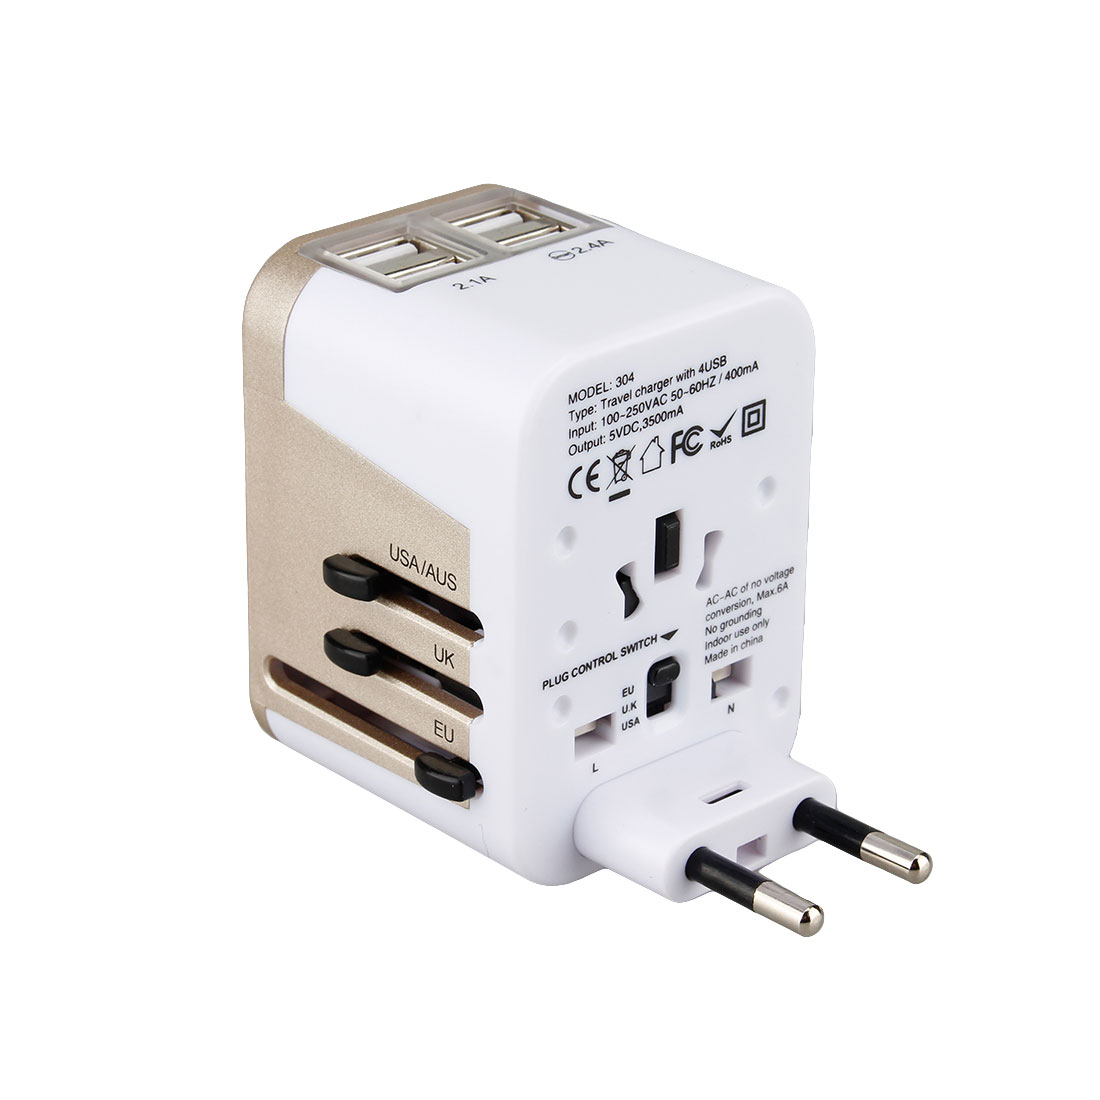 MAIF Color 4 USB Port All in 1 Universal International Plug Adapter World Travel AC Power Charger Adaptor with AU US UK EU Plug